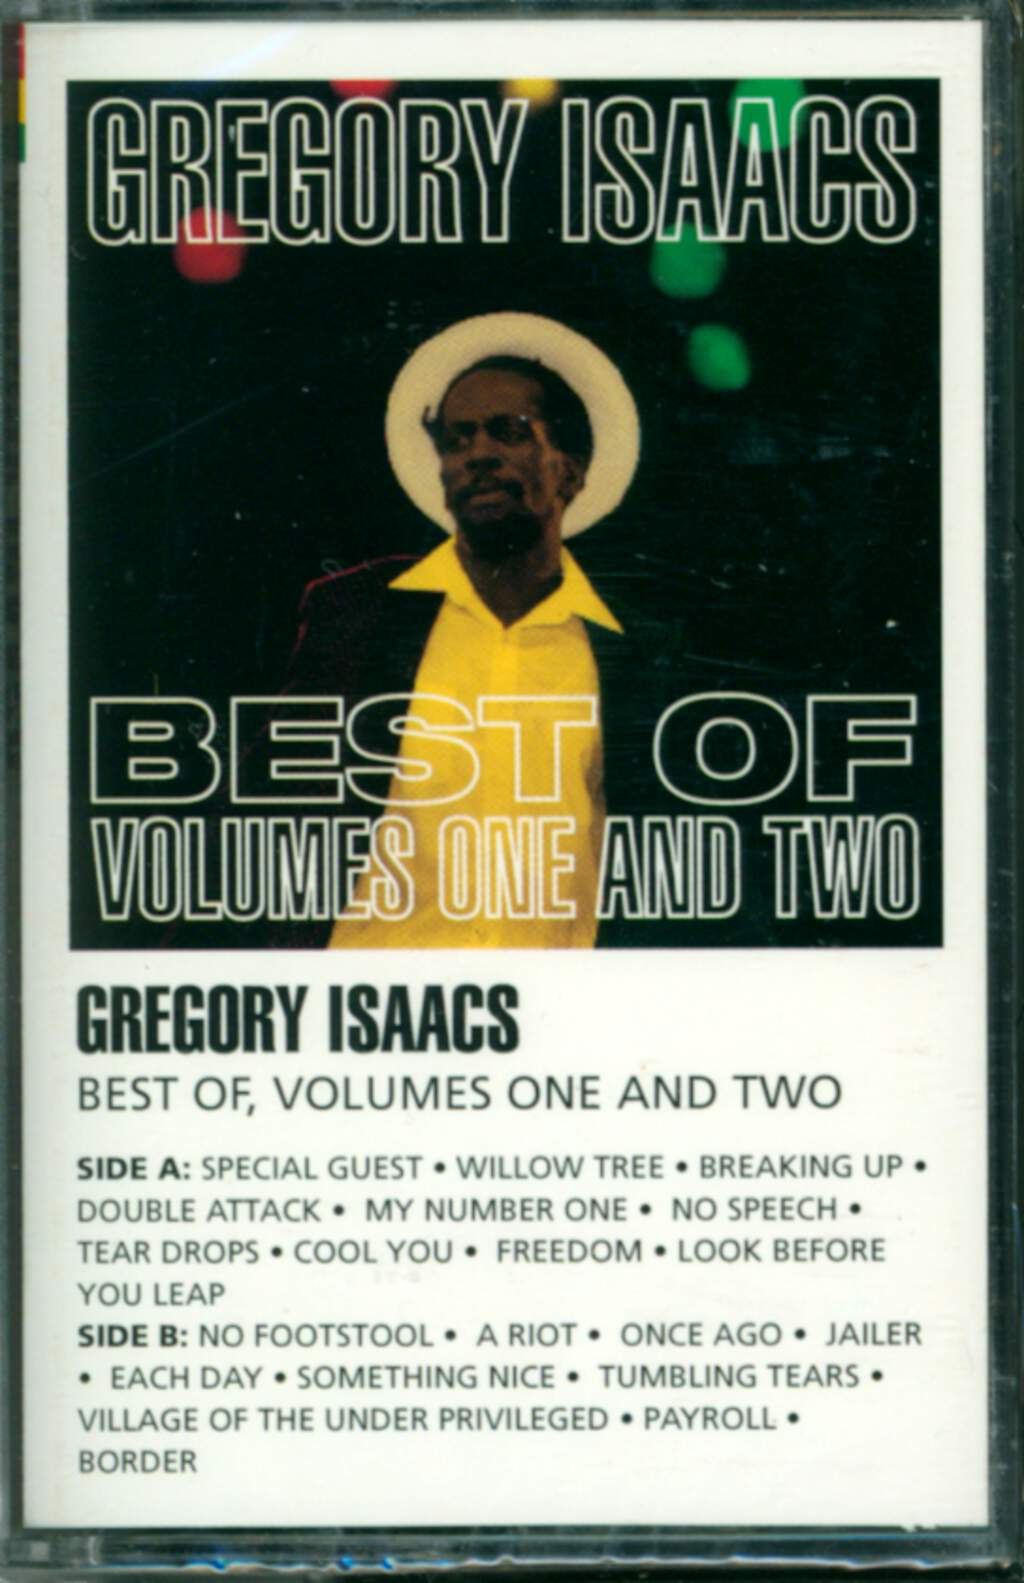 Gregory Isaacs: Best Of Volumes One And Two, Compact Cassette